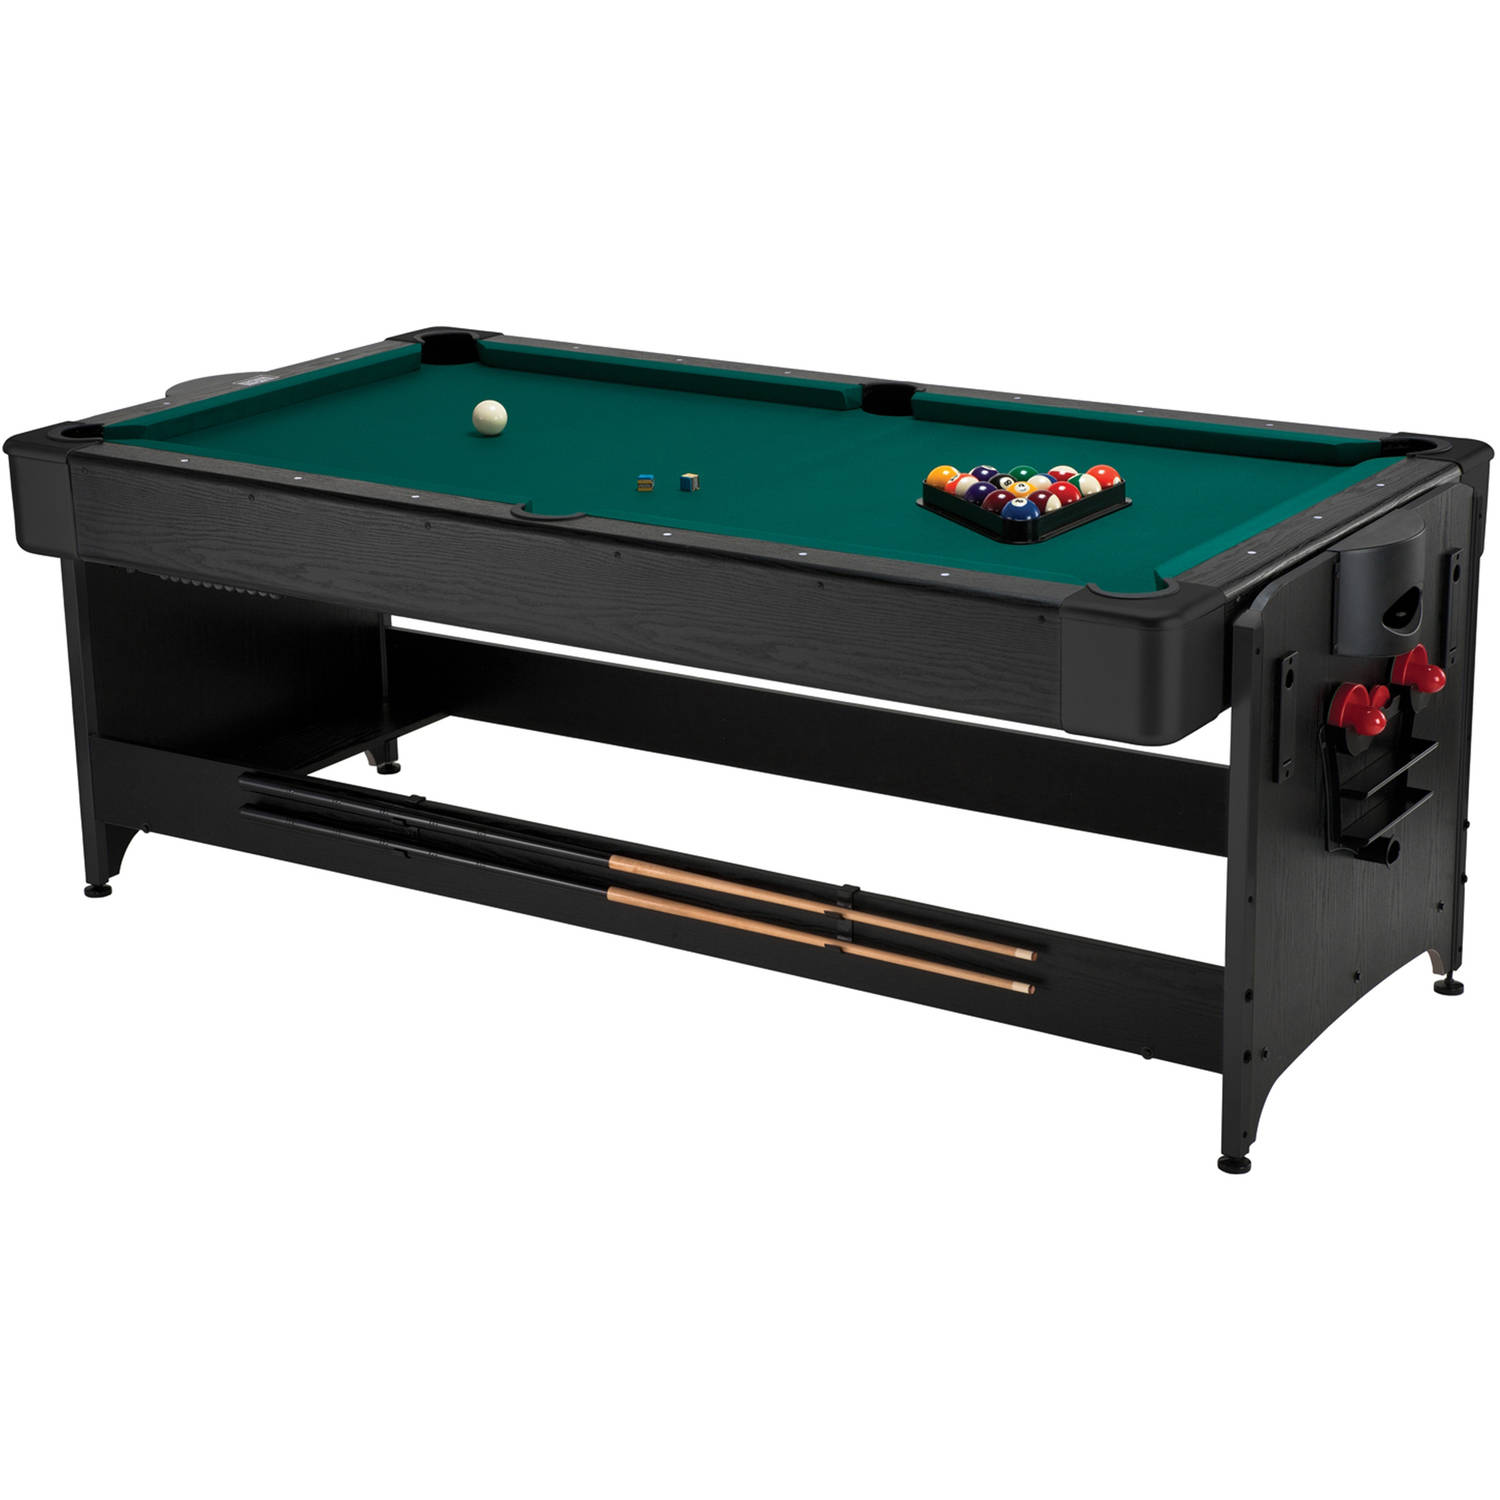 Fat Cat Pockey 7u0027 3 In 1 Game Table   Walmart.com